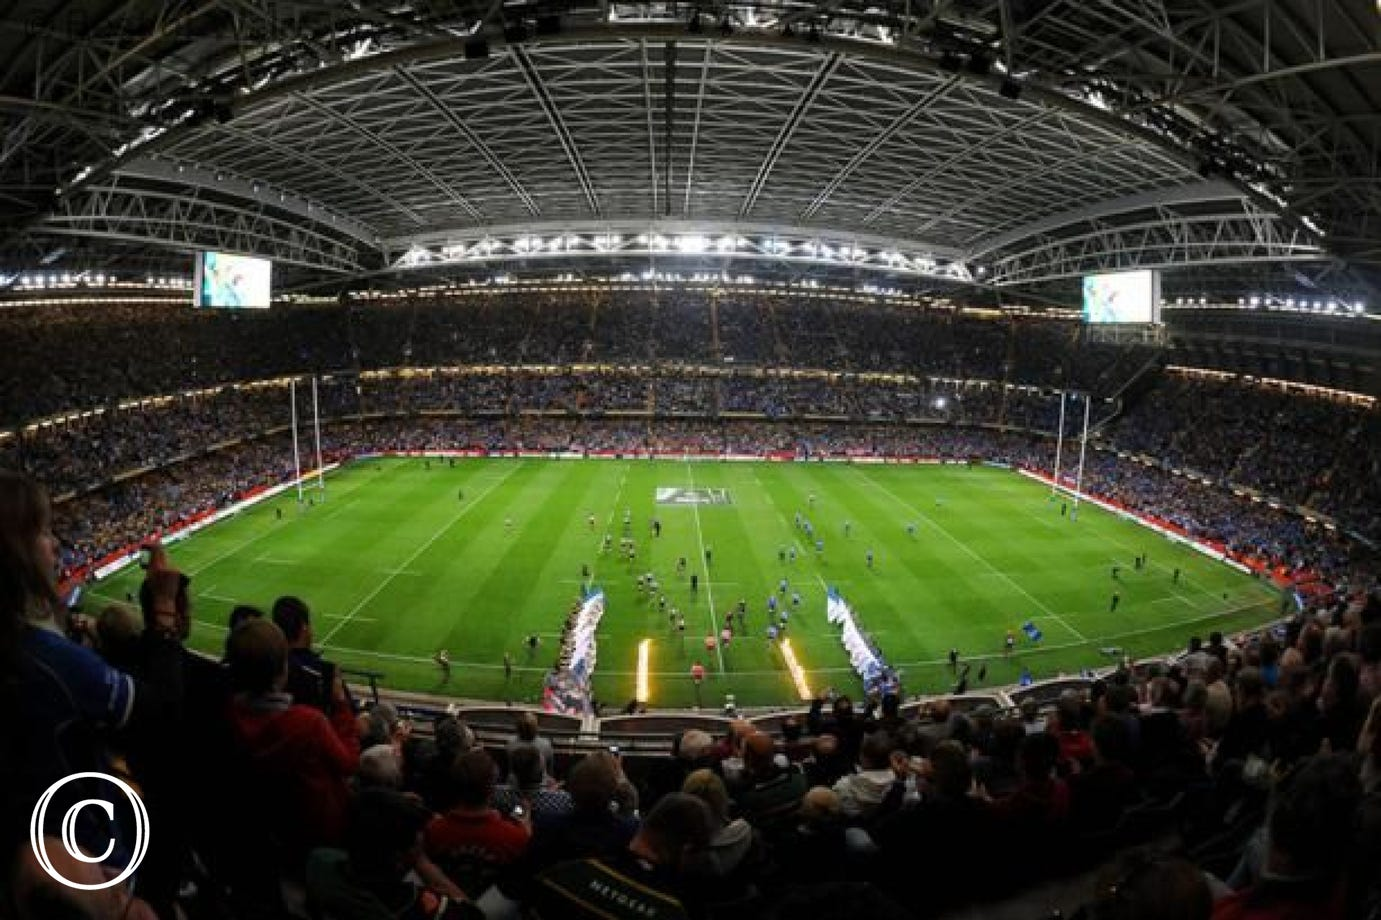 Cardiff and the Millennium Stadium is only a short drive away